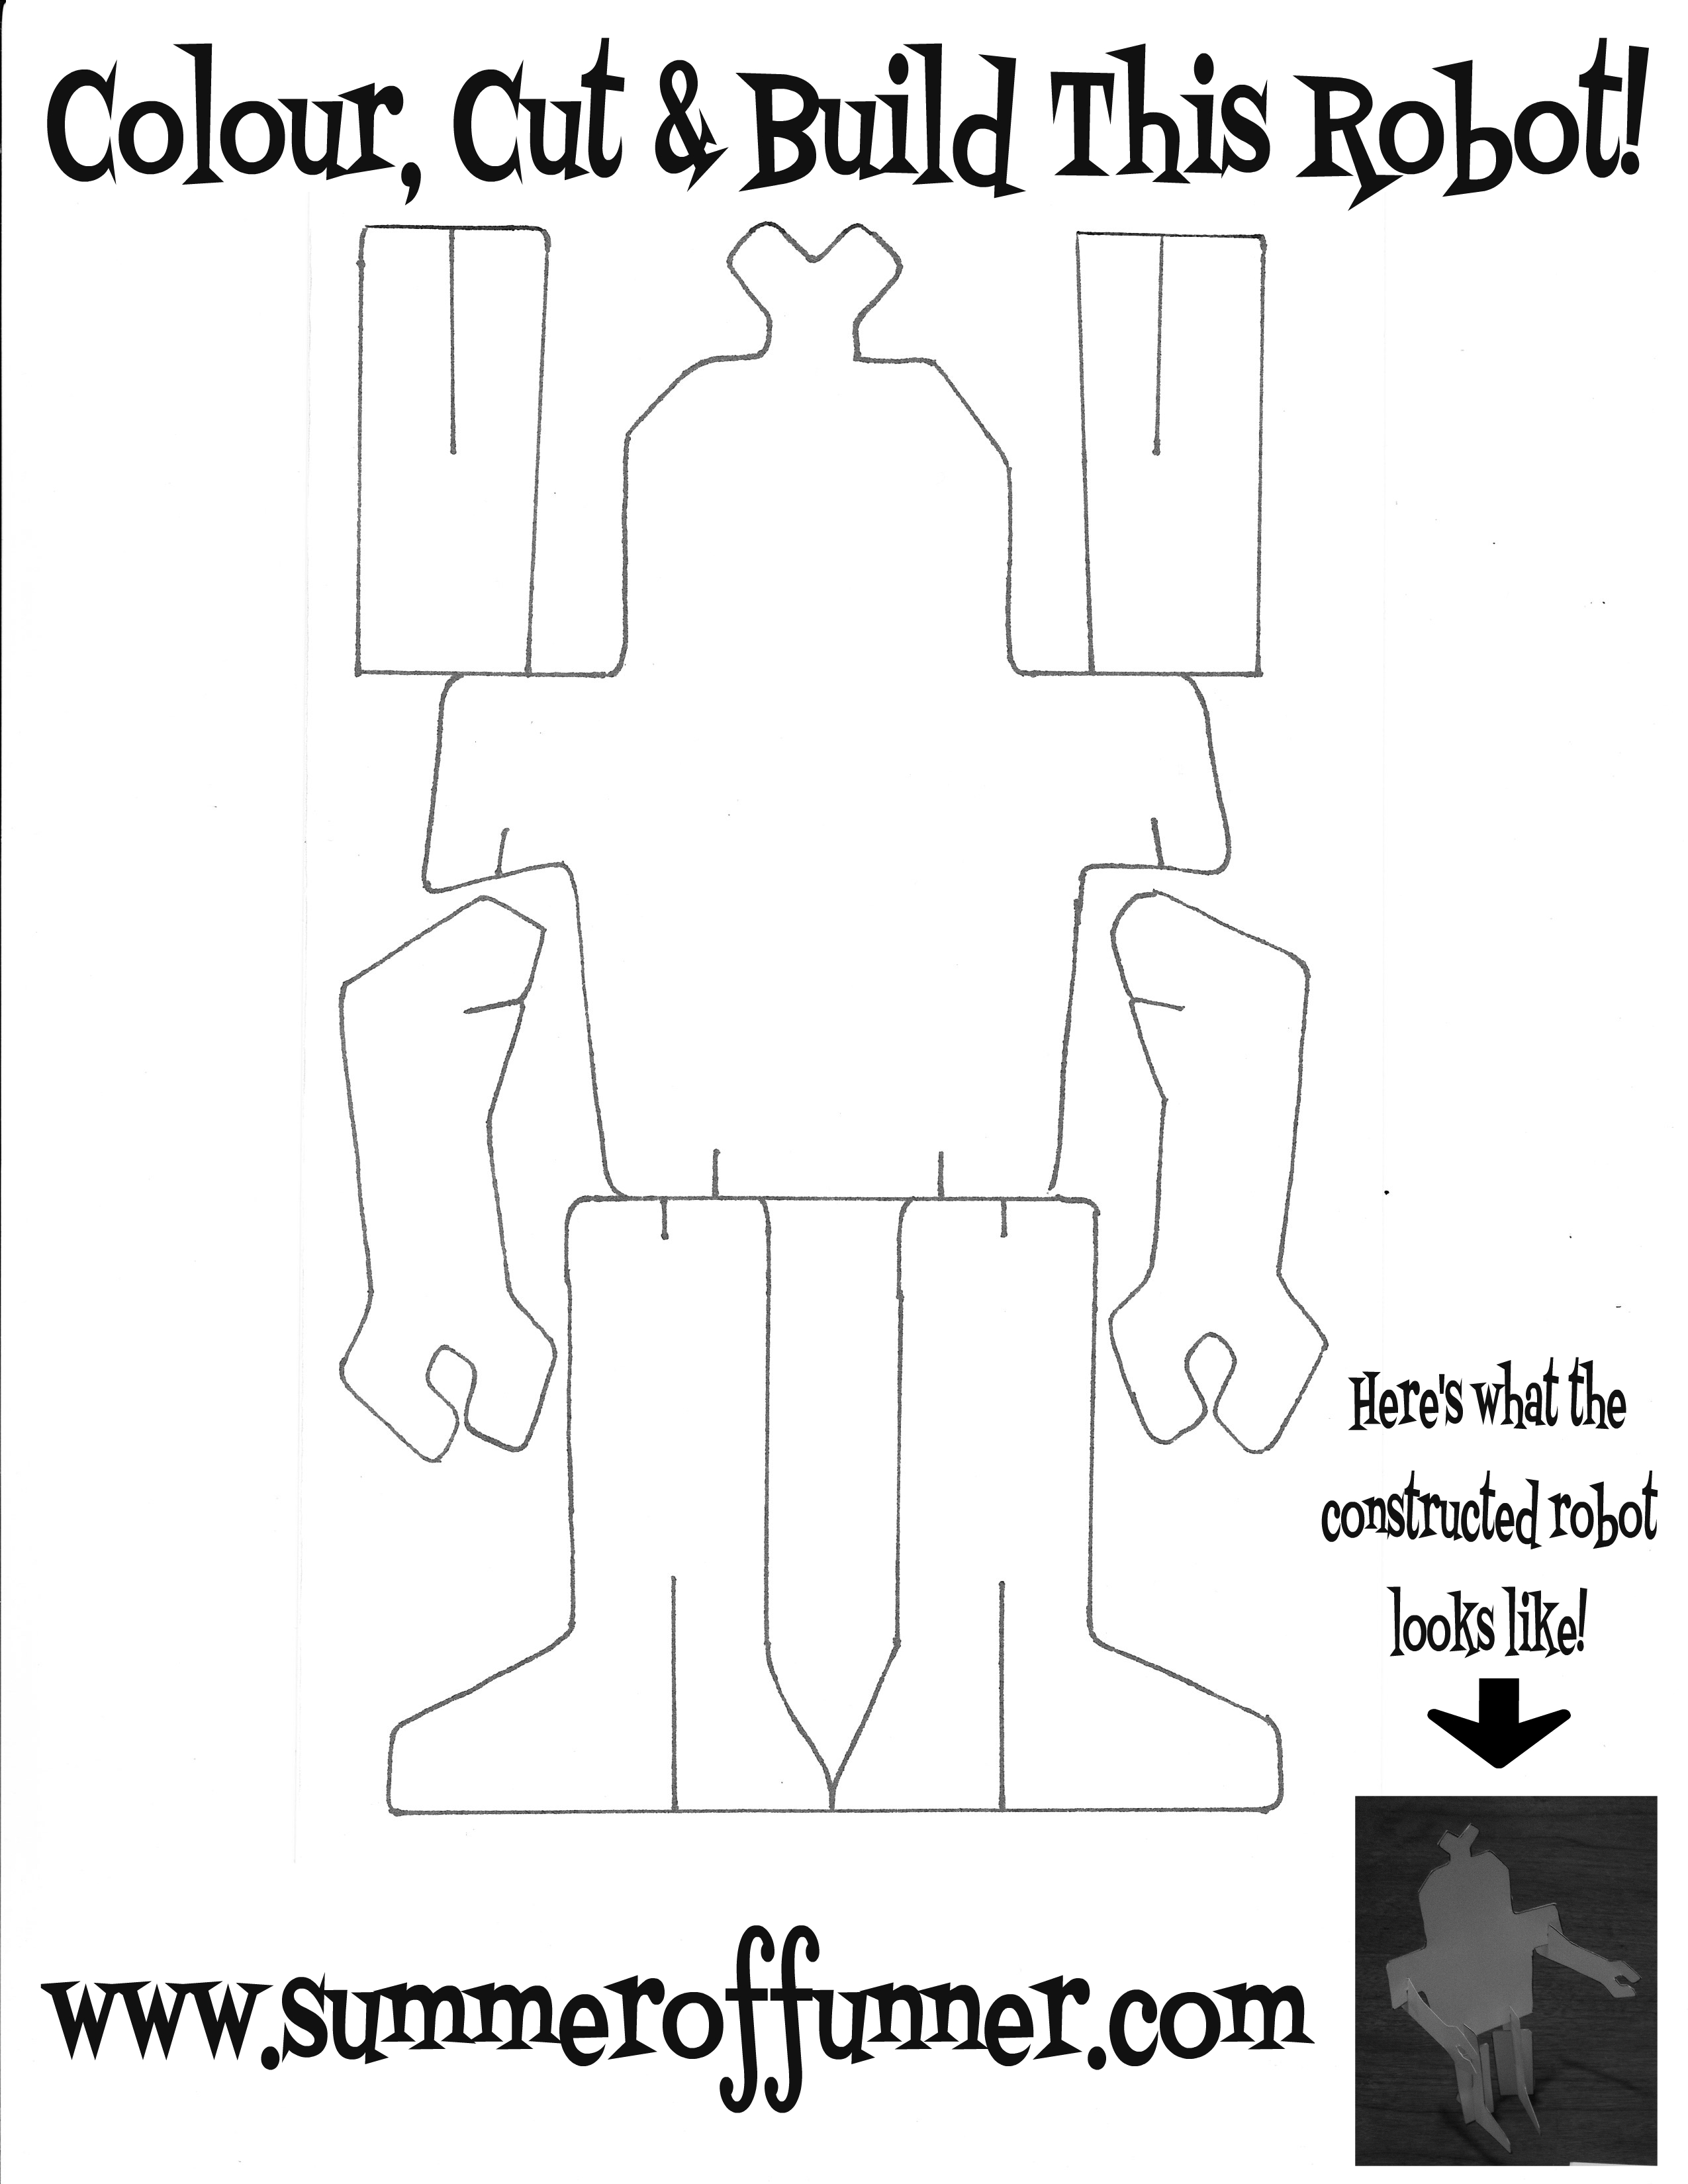 Colour Cut and Build This Robot Free Printable Robot Template from Summer of Funner dot Com